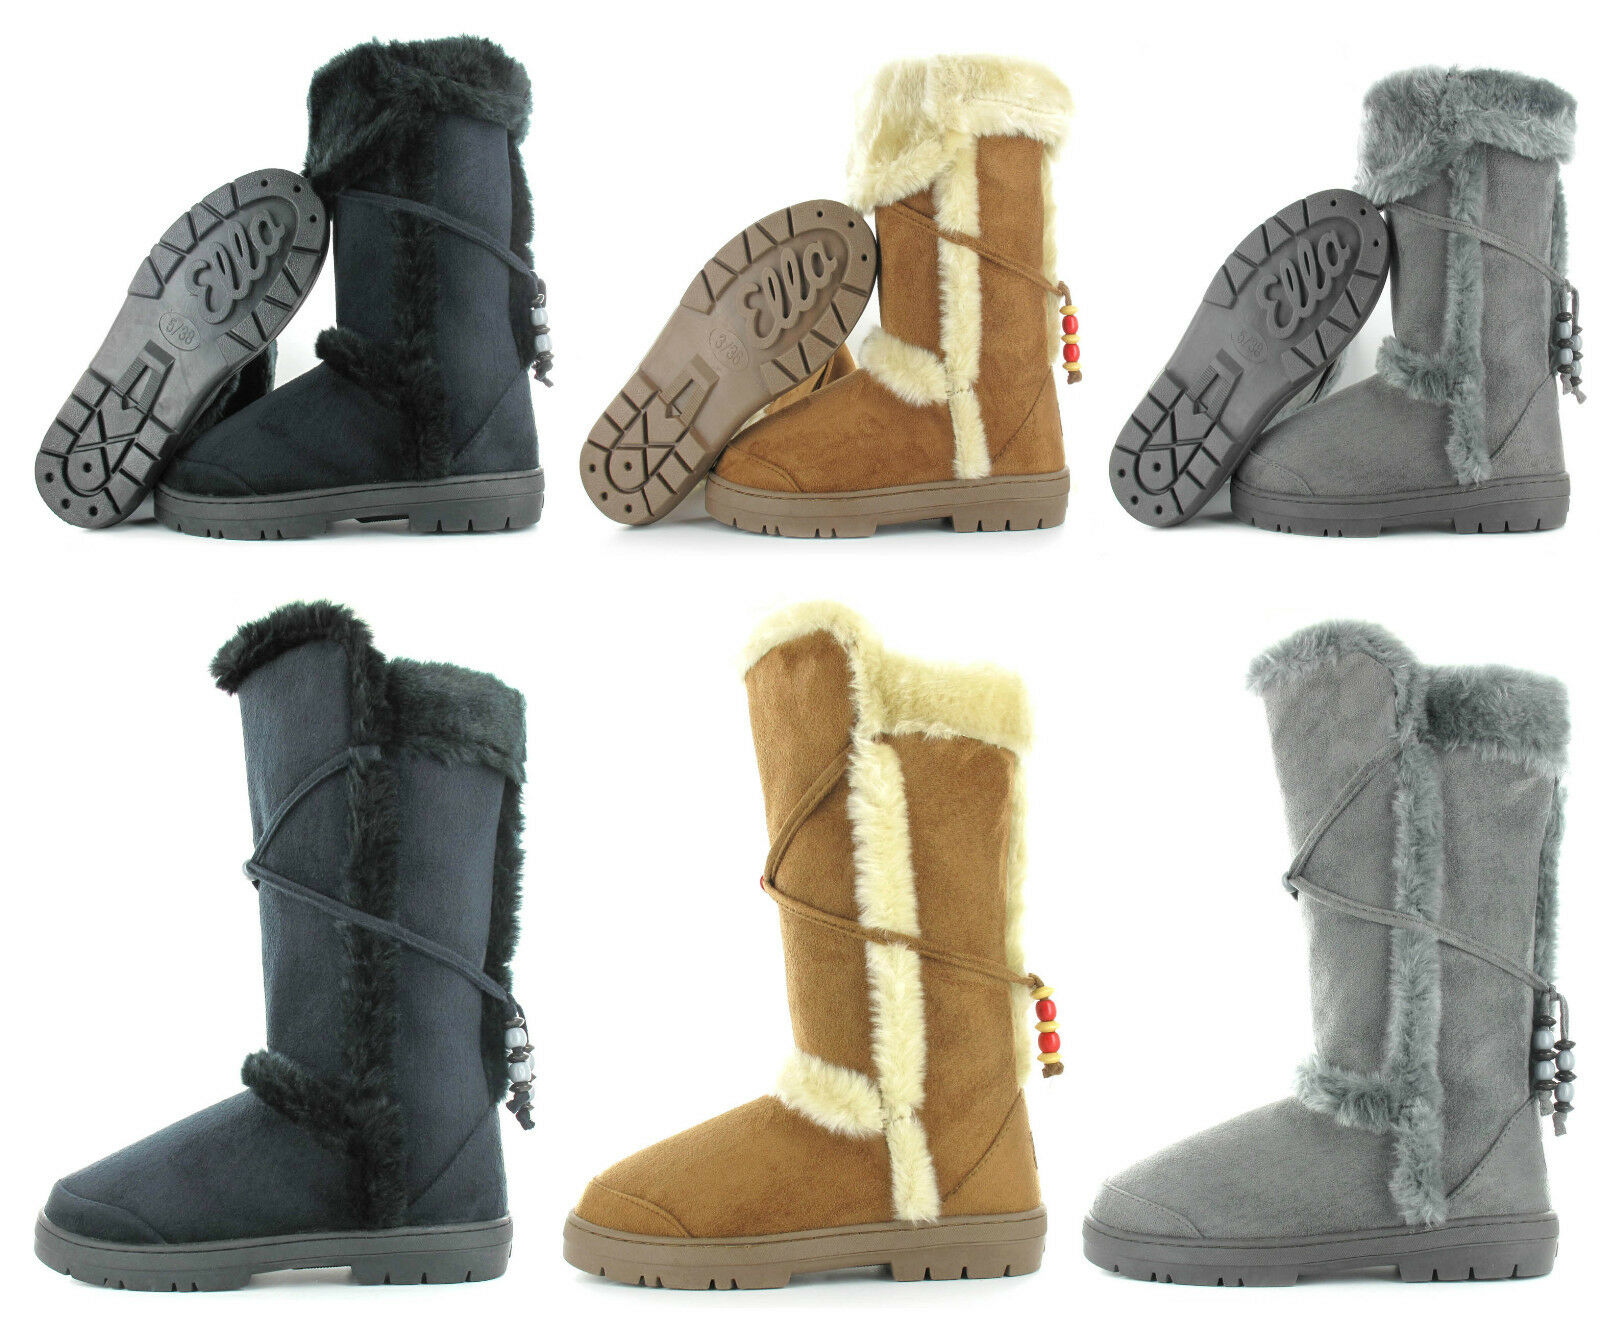 ELLA SHOES TILLYNEW WOMENS MID CALF WINTER FUR BOOTS LADIES UK SIZE 3-8